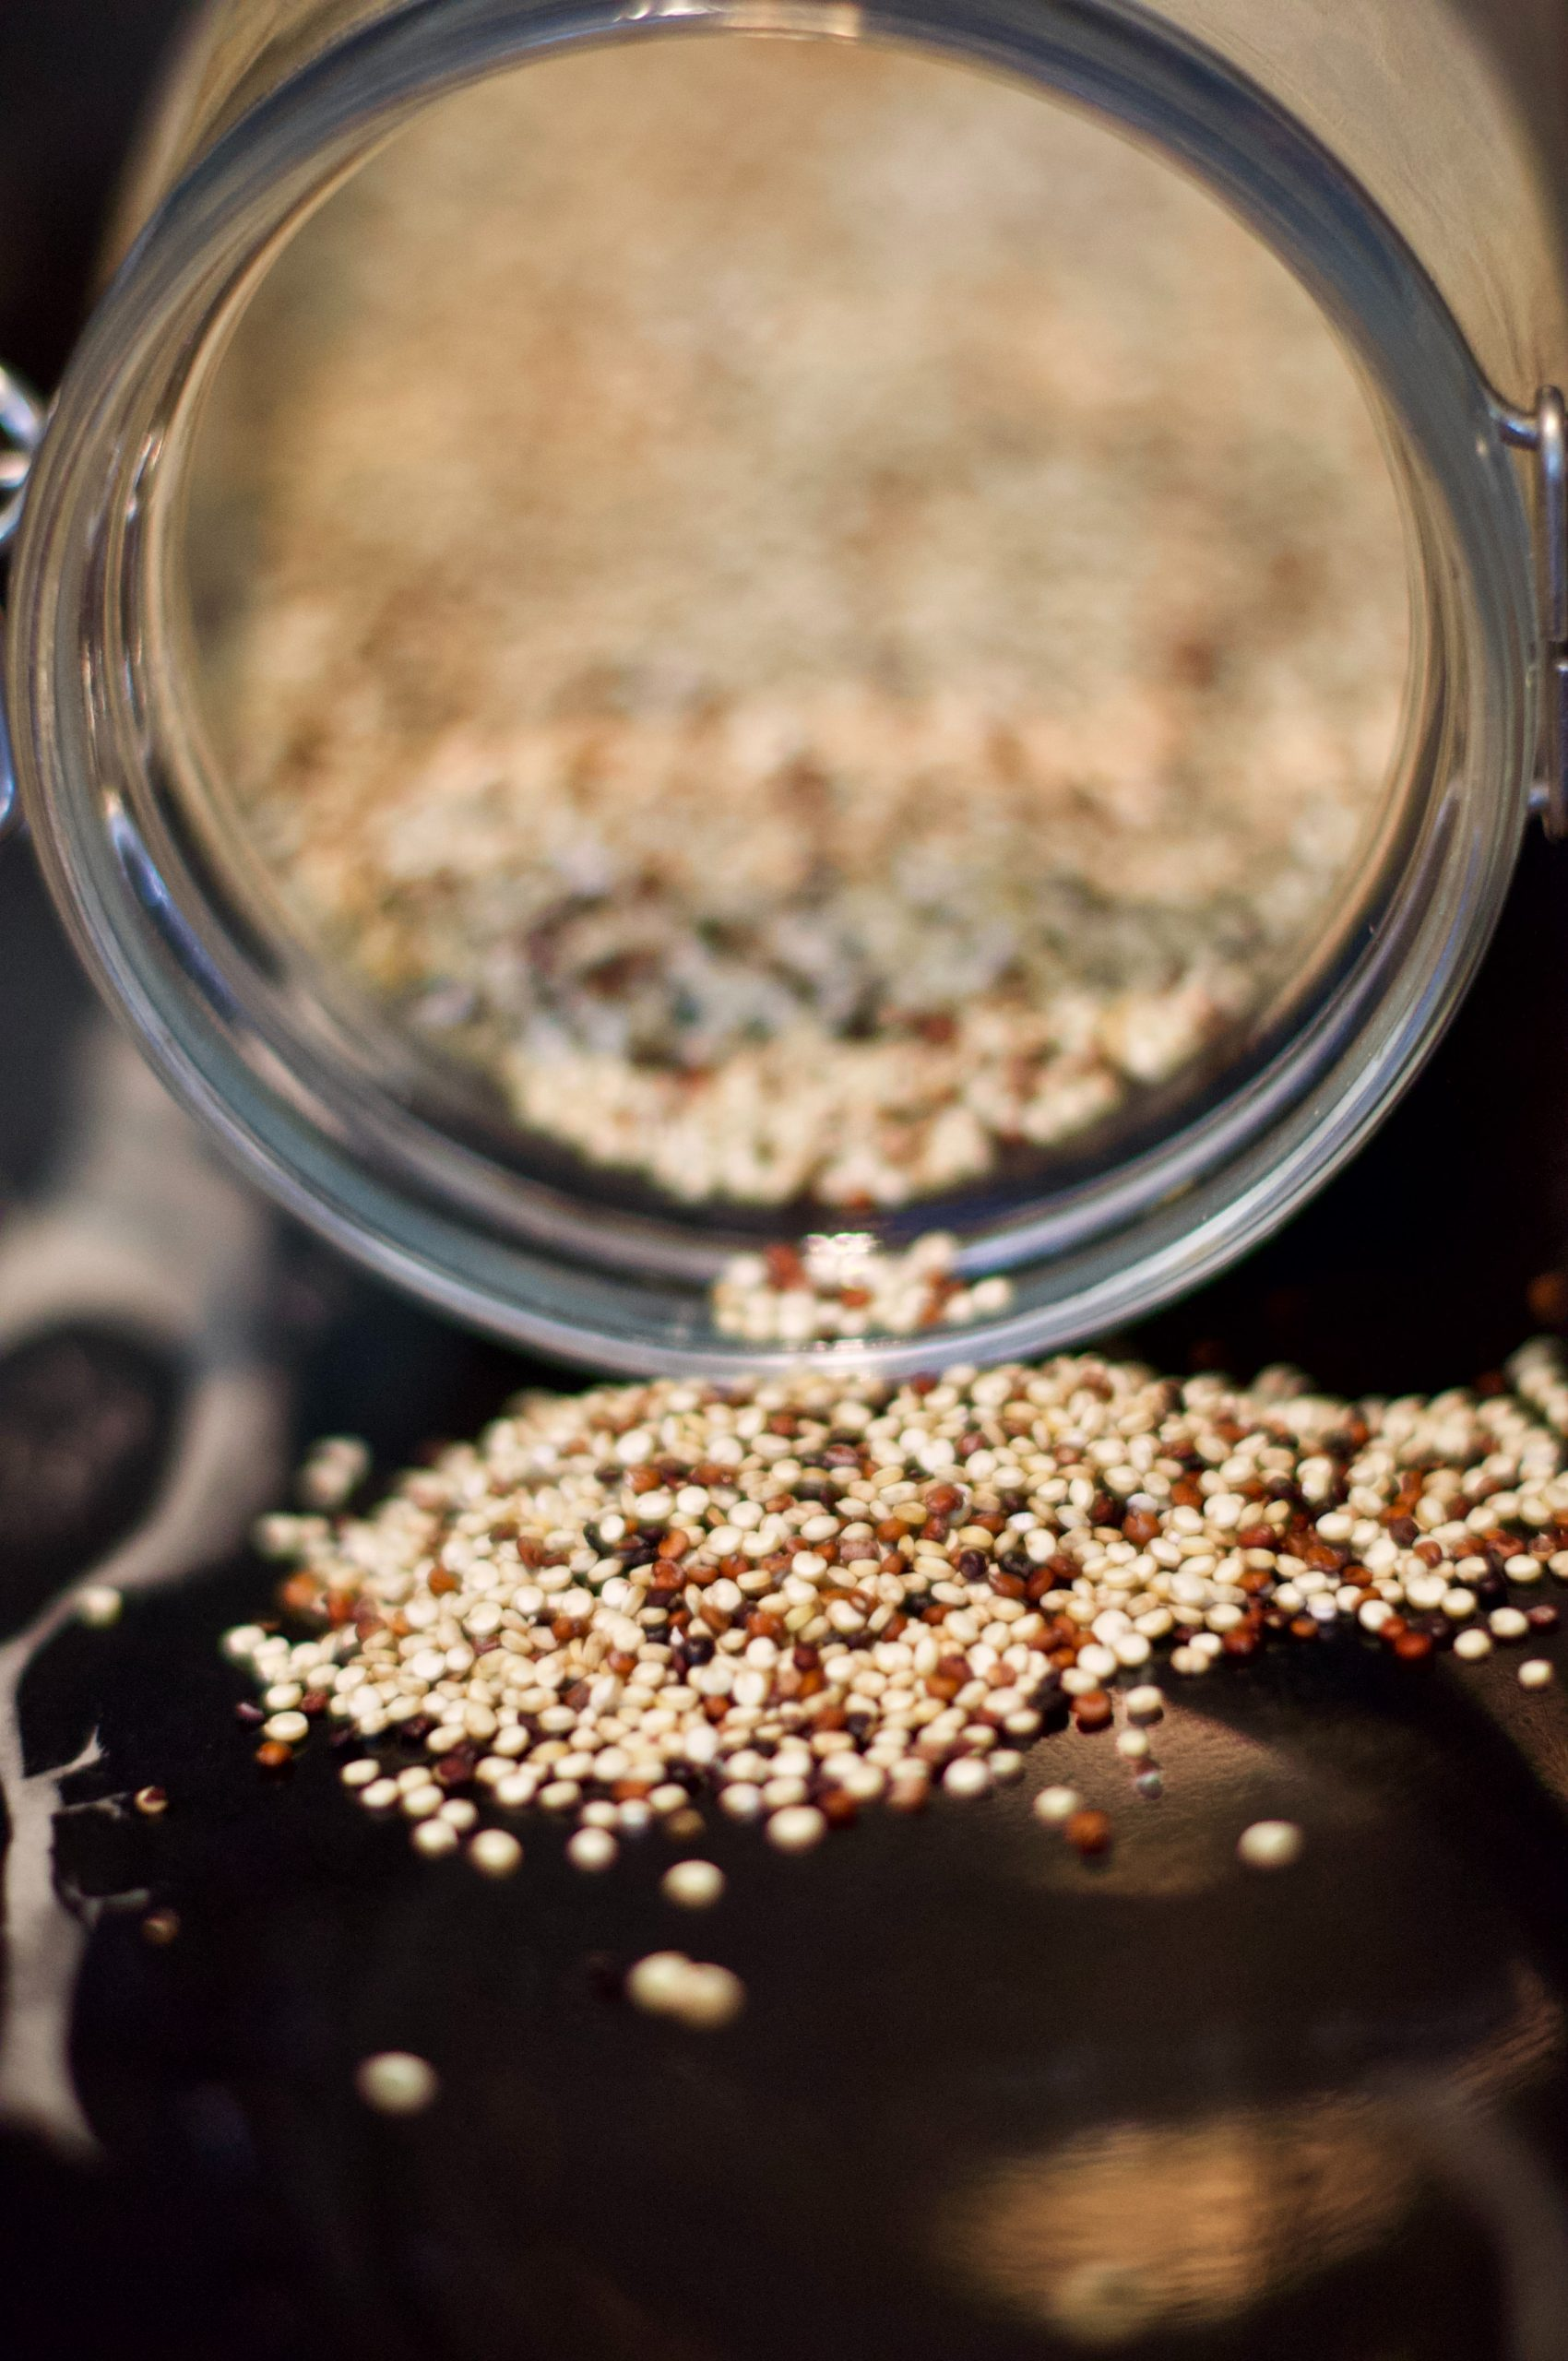 Substitute For Chia Seeds - What's a Good Replacement For Chia Seeds?